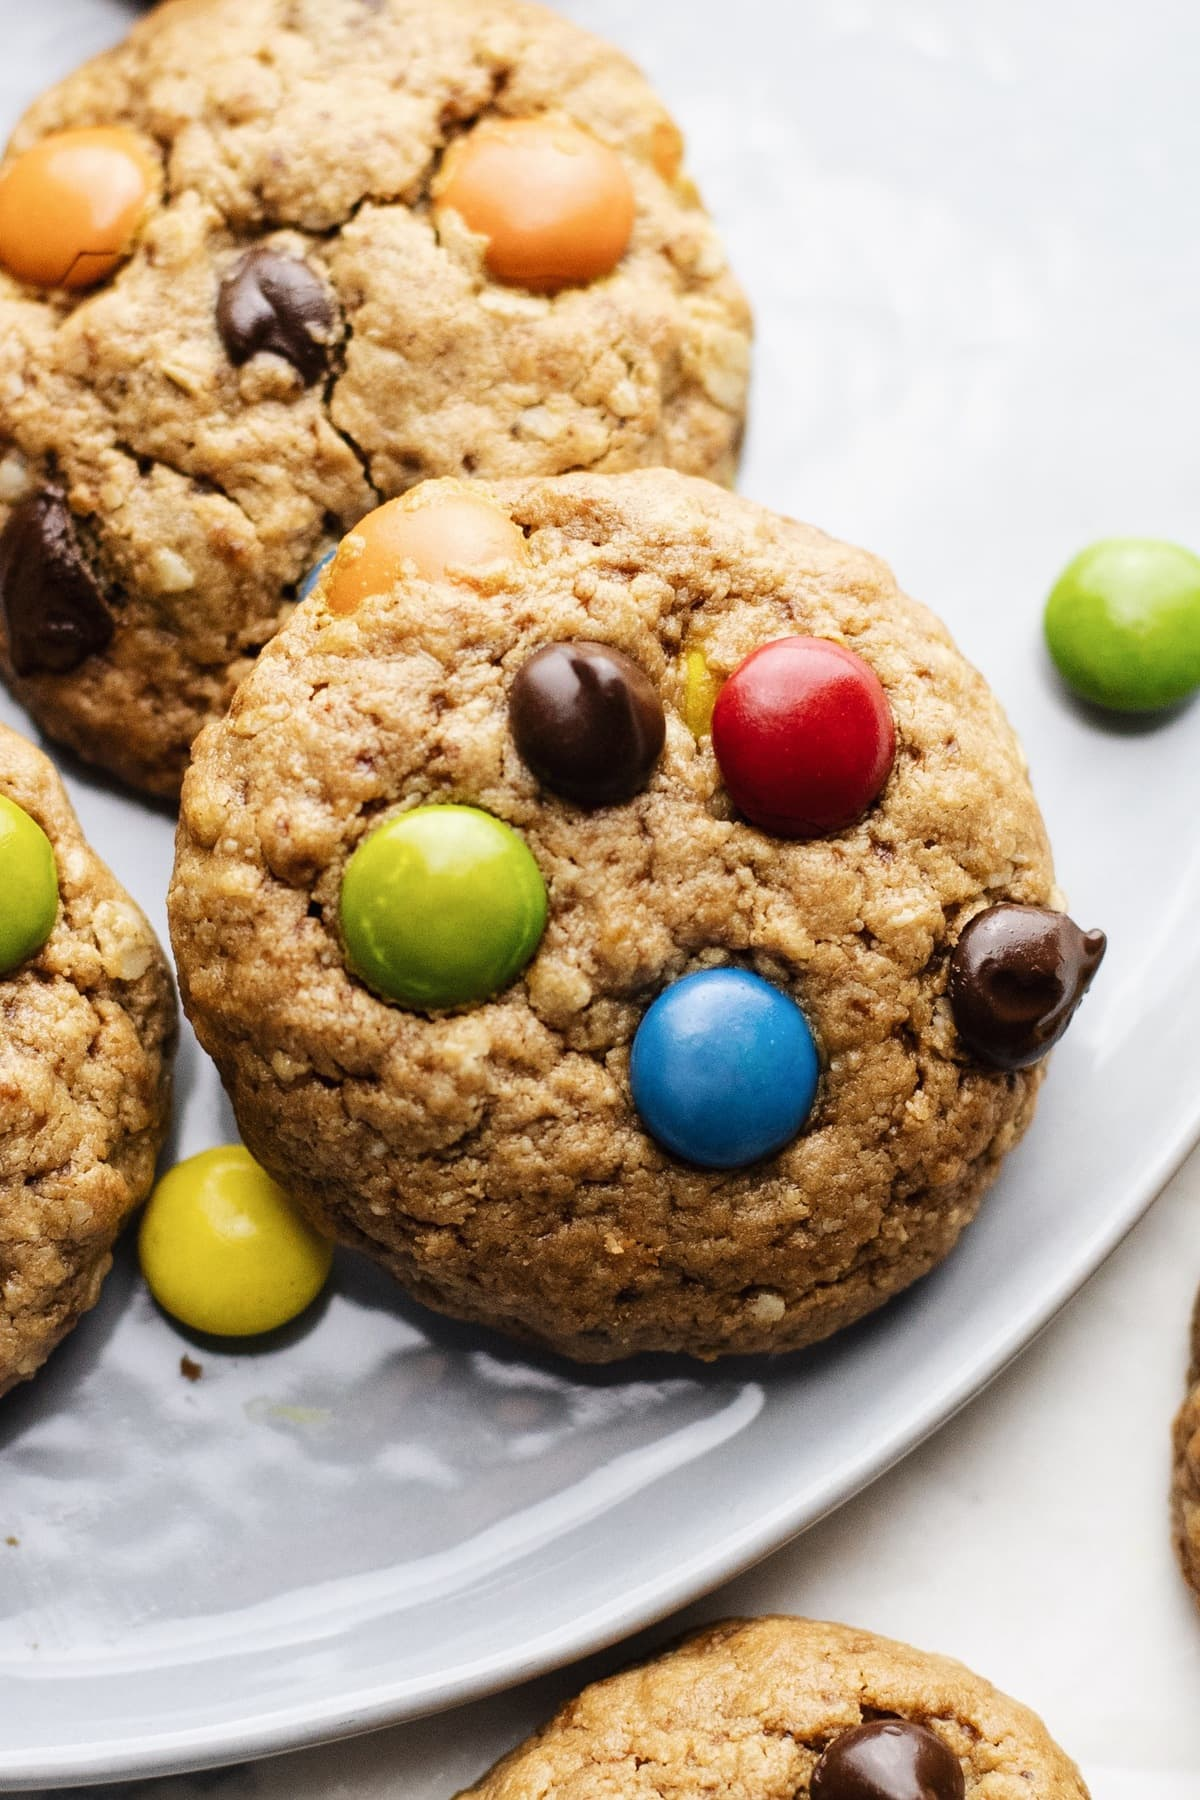 a close up of a m&m and chocolate chip cookie on a grey plate.